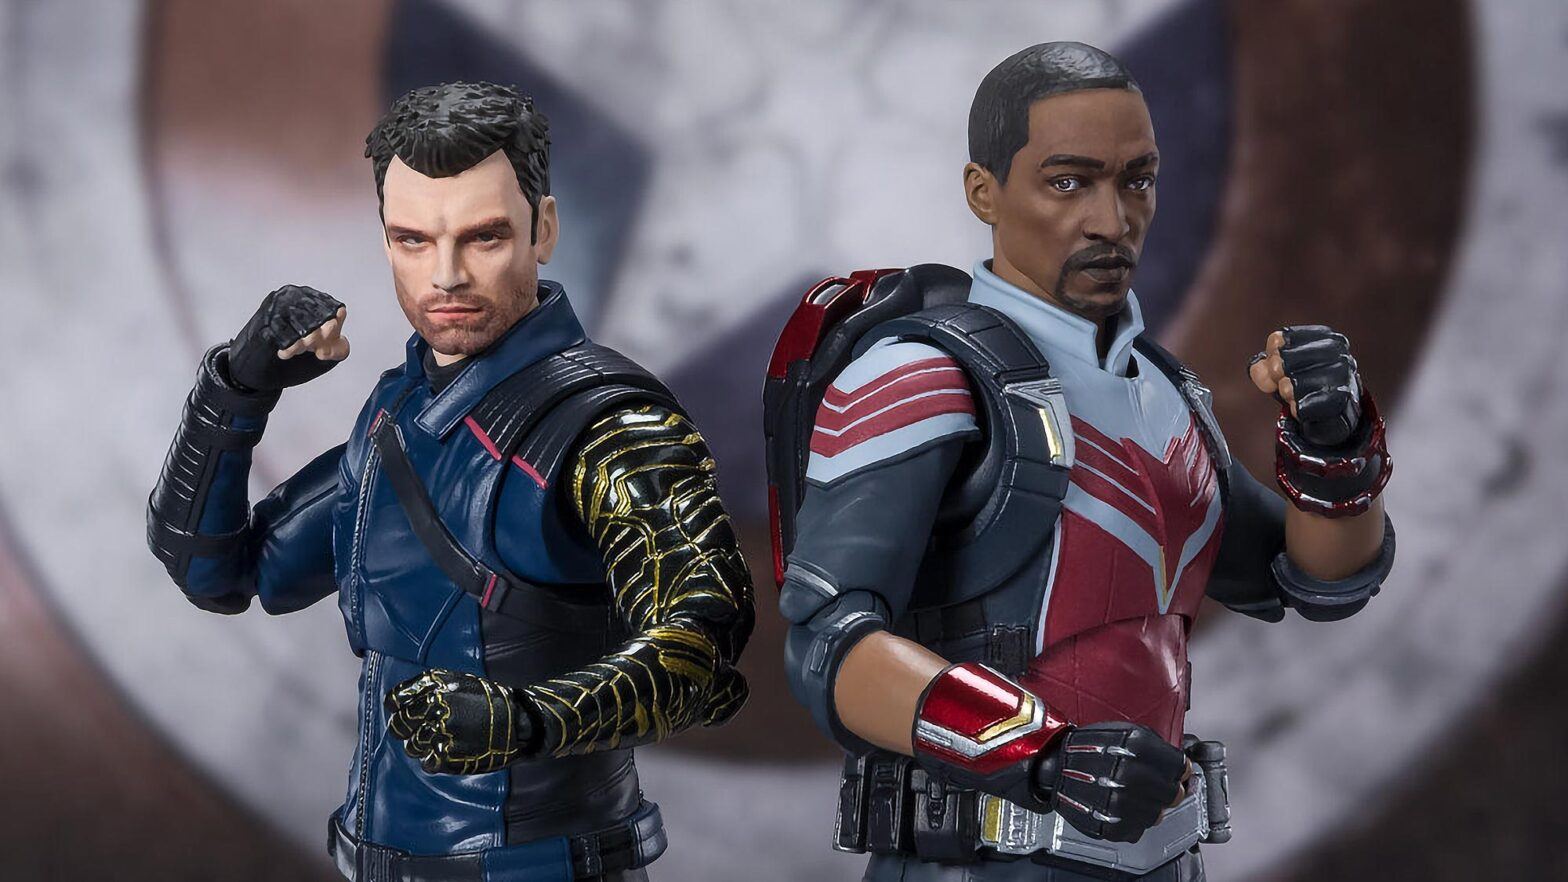 S.H.Figuarts The Falcon and Winter Soldier Figures